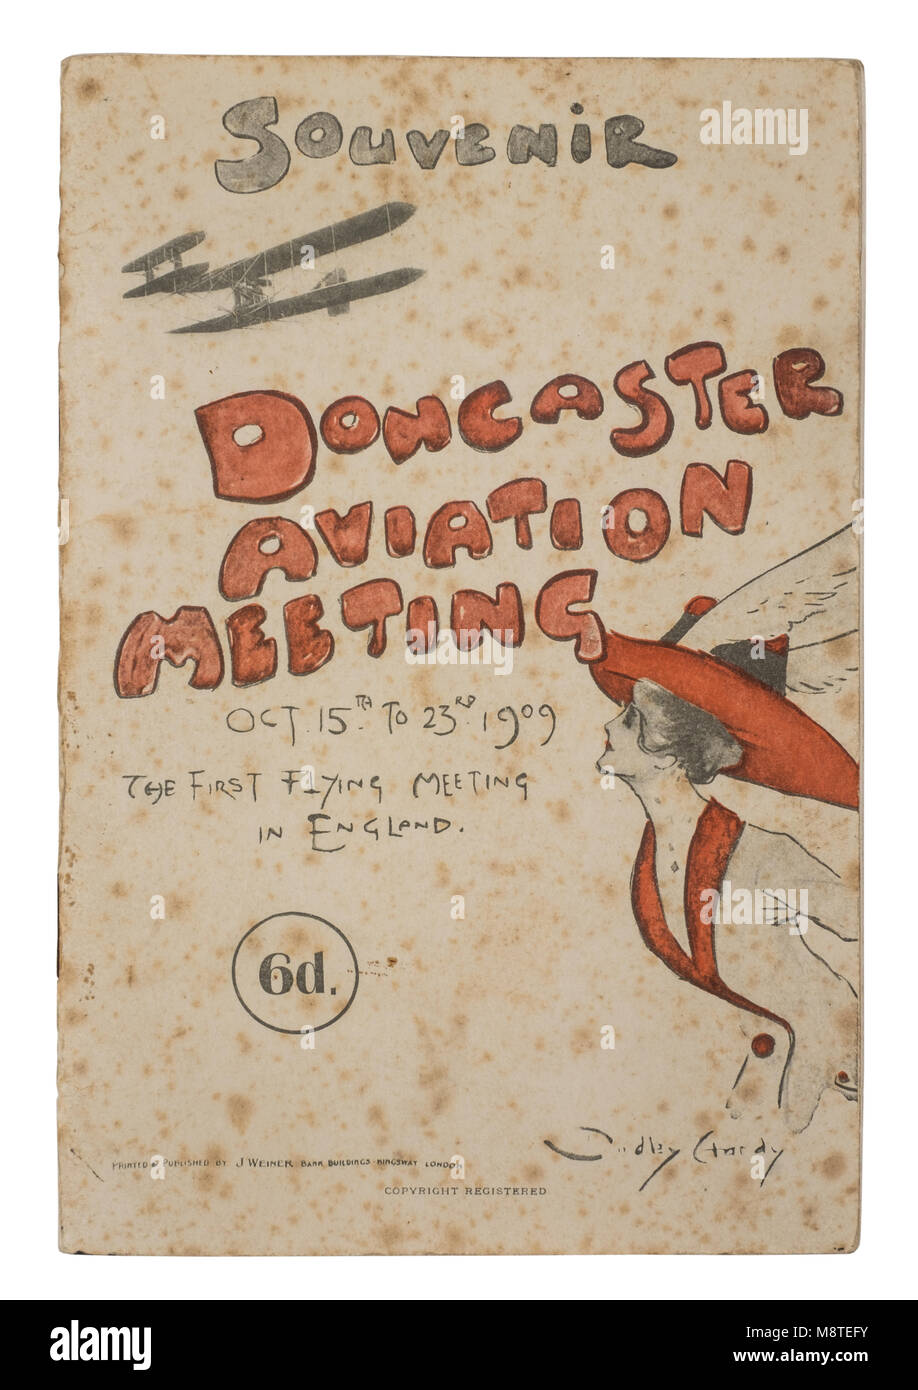 Rare 1909 Doncaster Aviation Meeting souvenir programme. Held from 15th to 23rd October 1909, this was the first - Stock Image